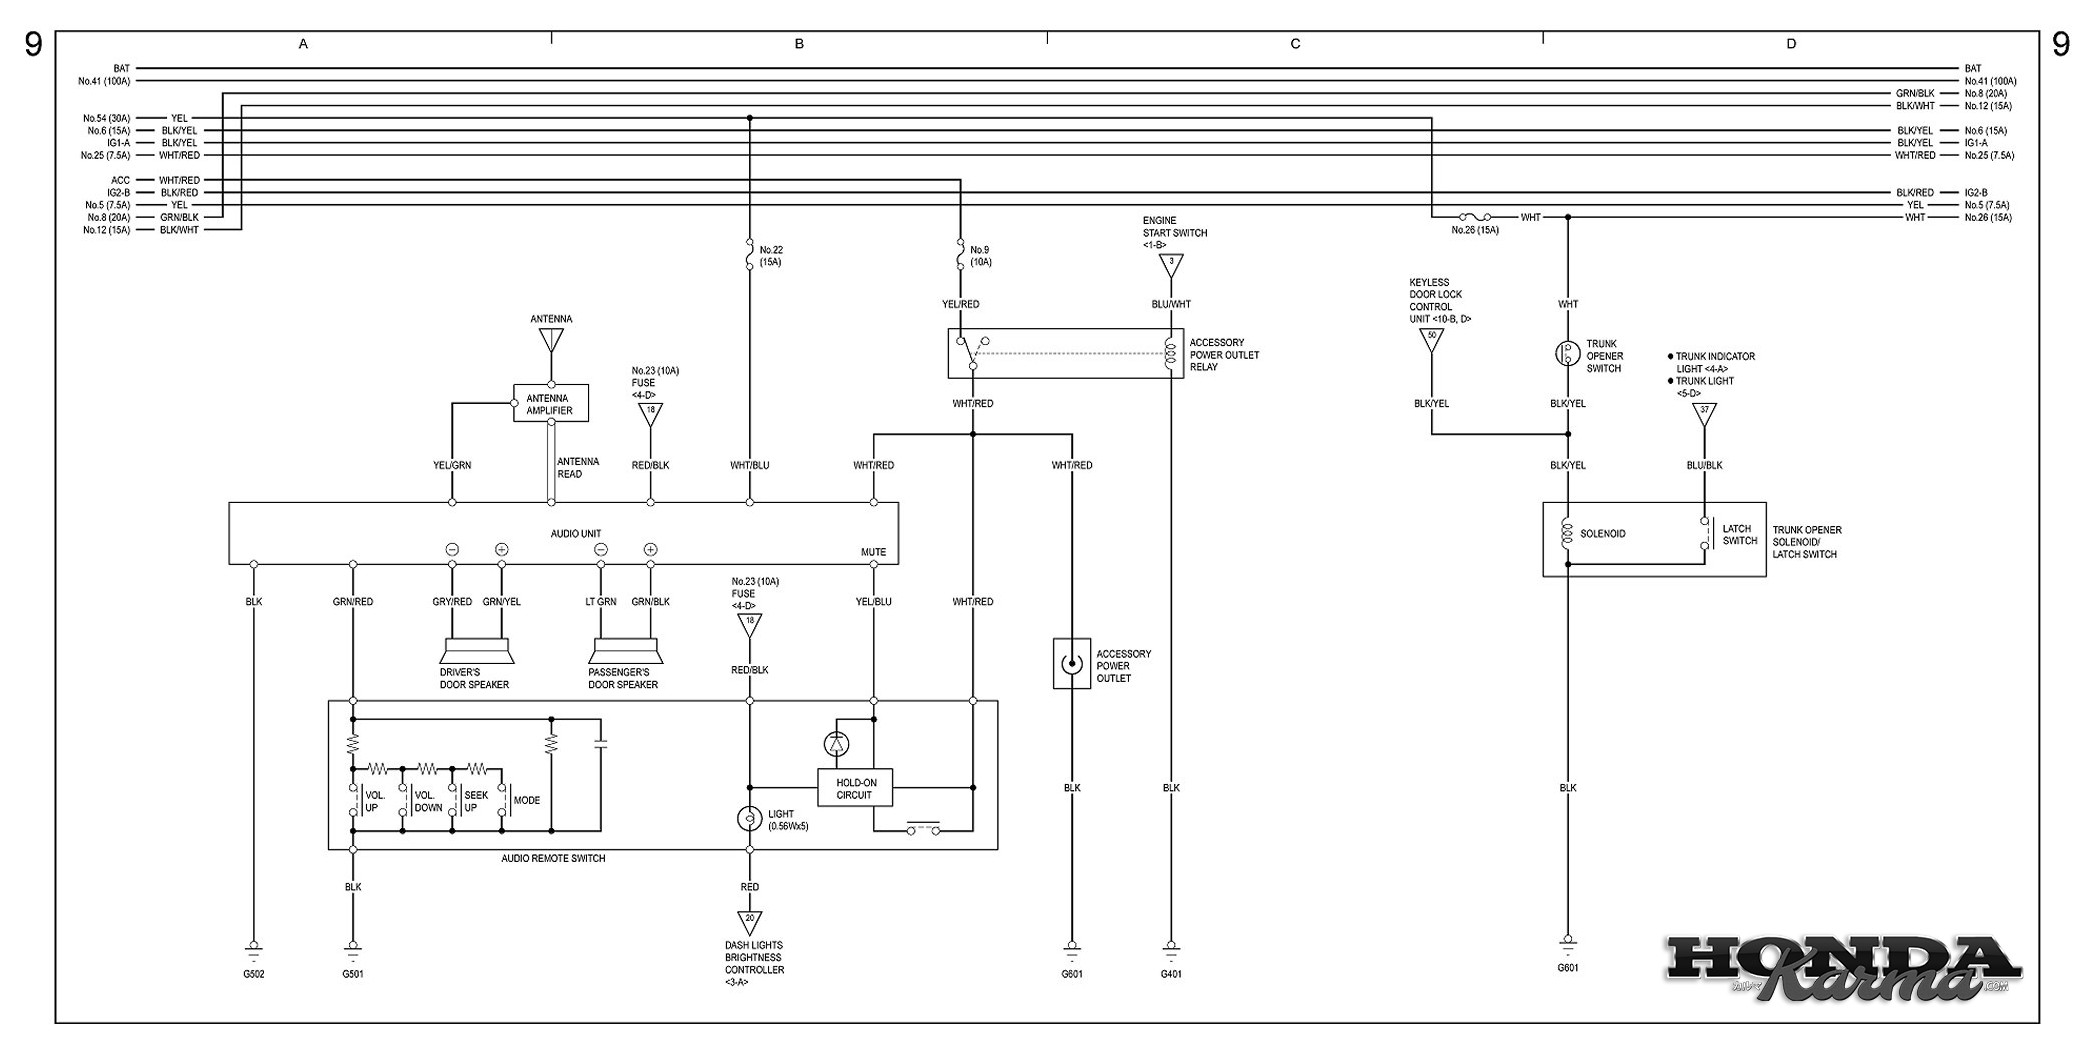 Gentex 313 Wiring Diagram Awesome